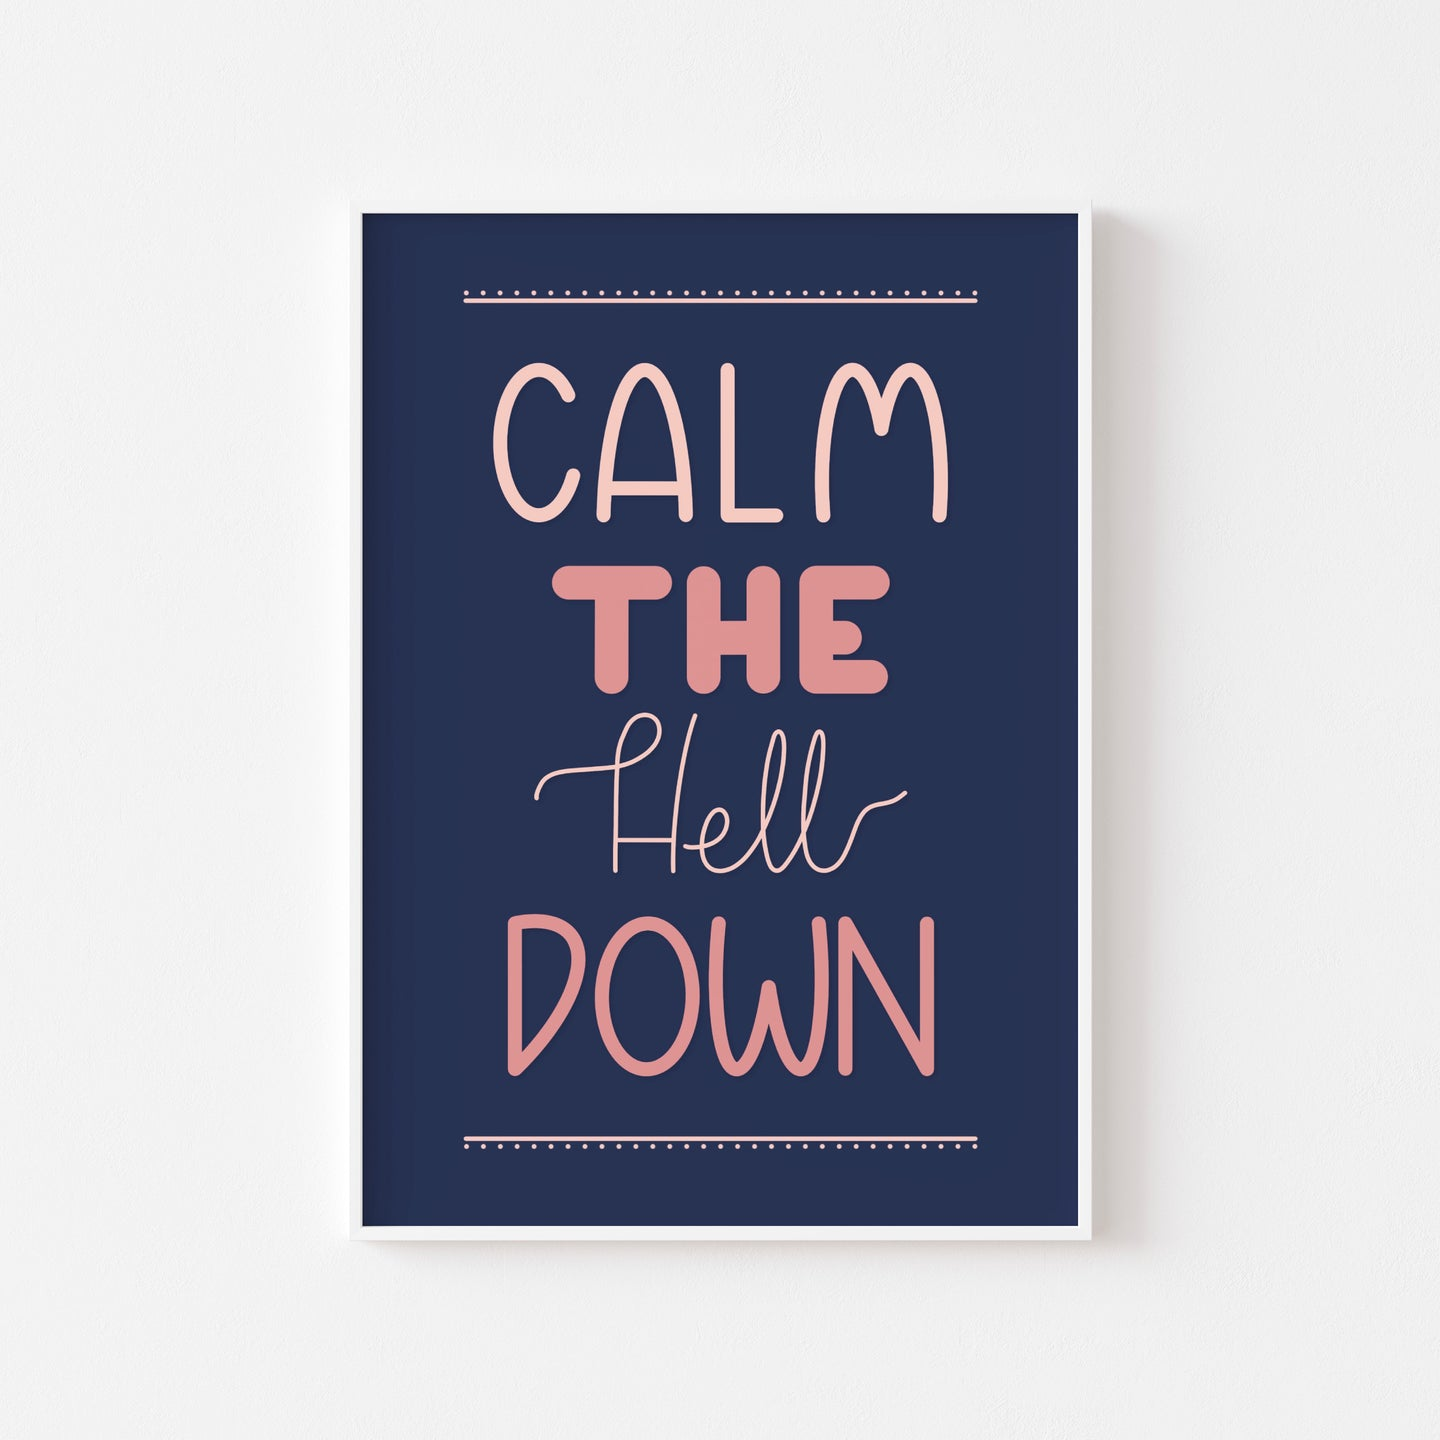 A photograph of our 'Calm The Hell Down' print on a white wall in a white frame - hand lettered text that reads 'calm the hell down' in shades of pink on a navy blue background.